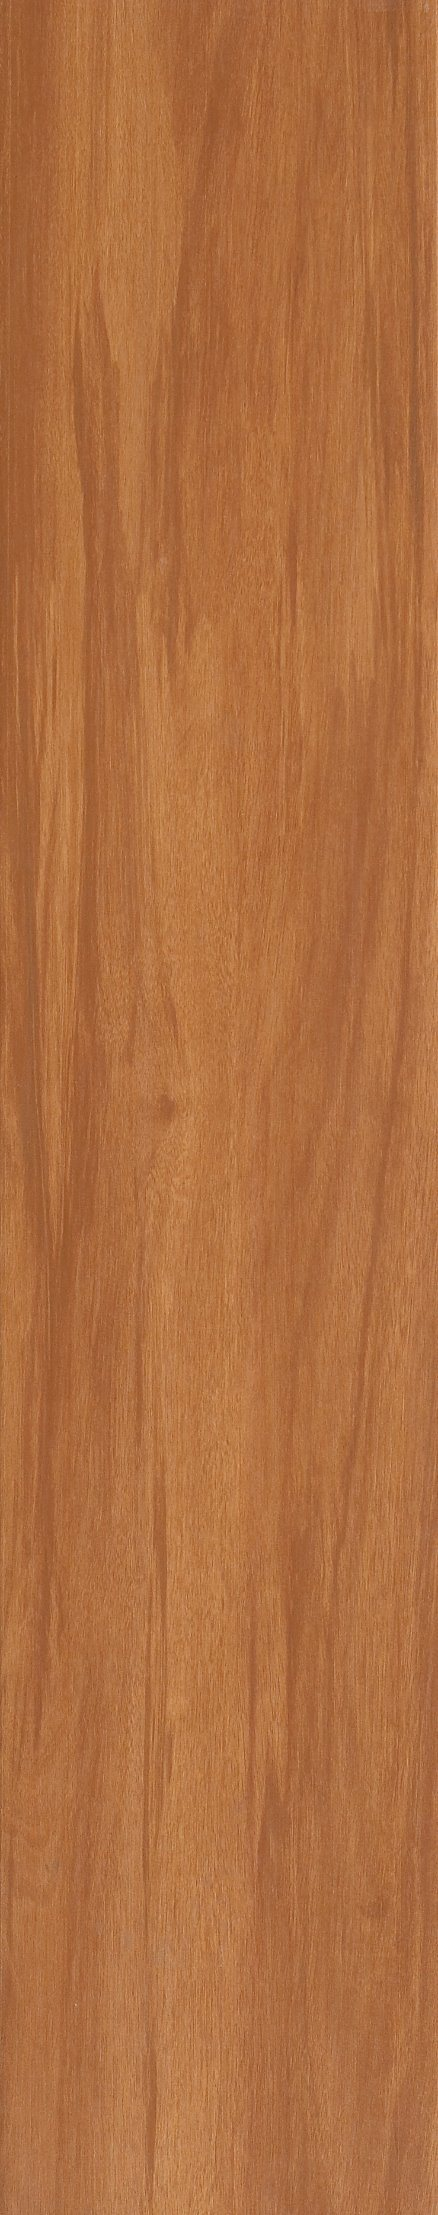 Wood Surface Glazed Porcelain Ceramic Flooring Tiles (1000X200mm)